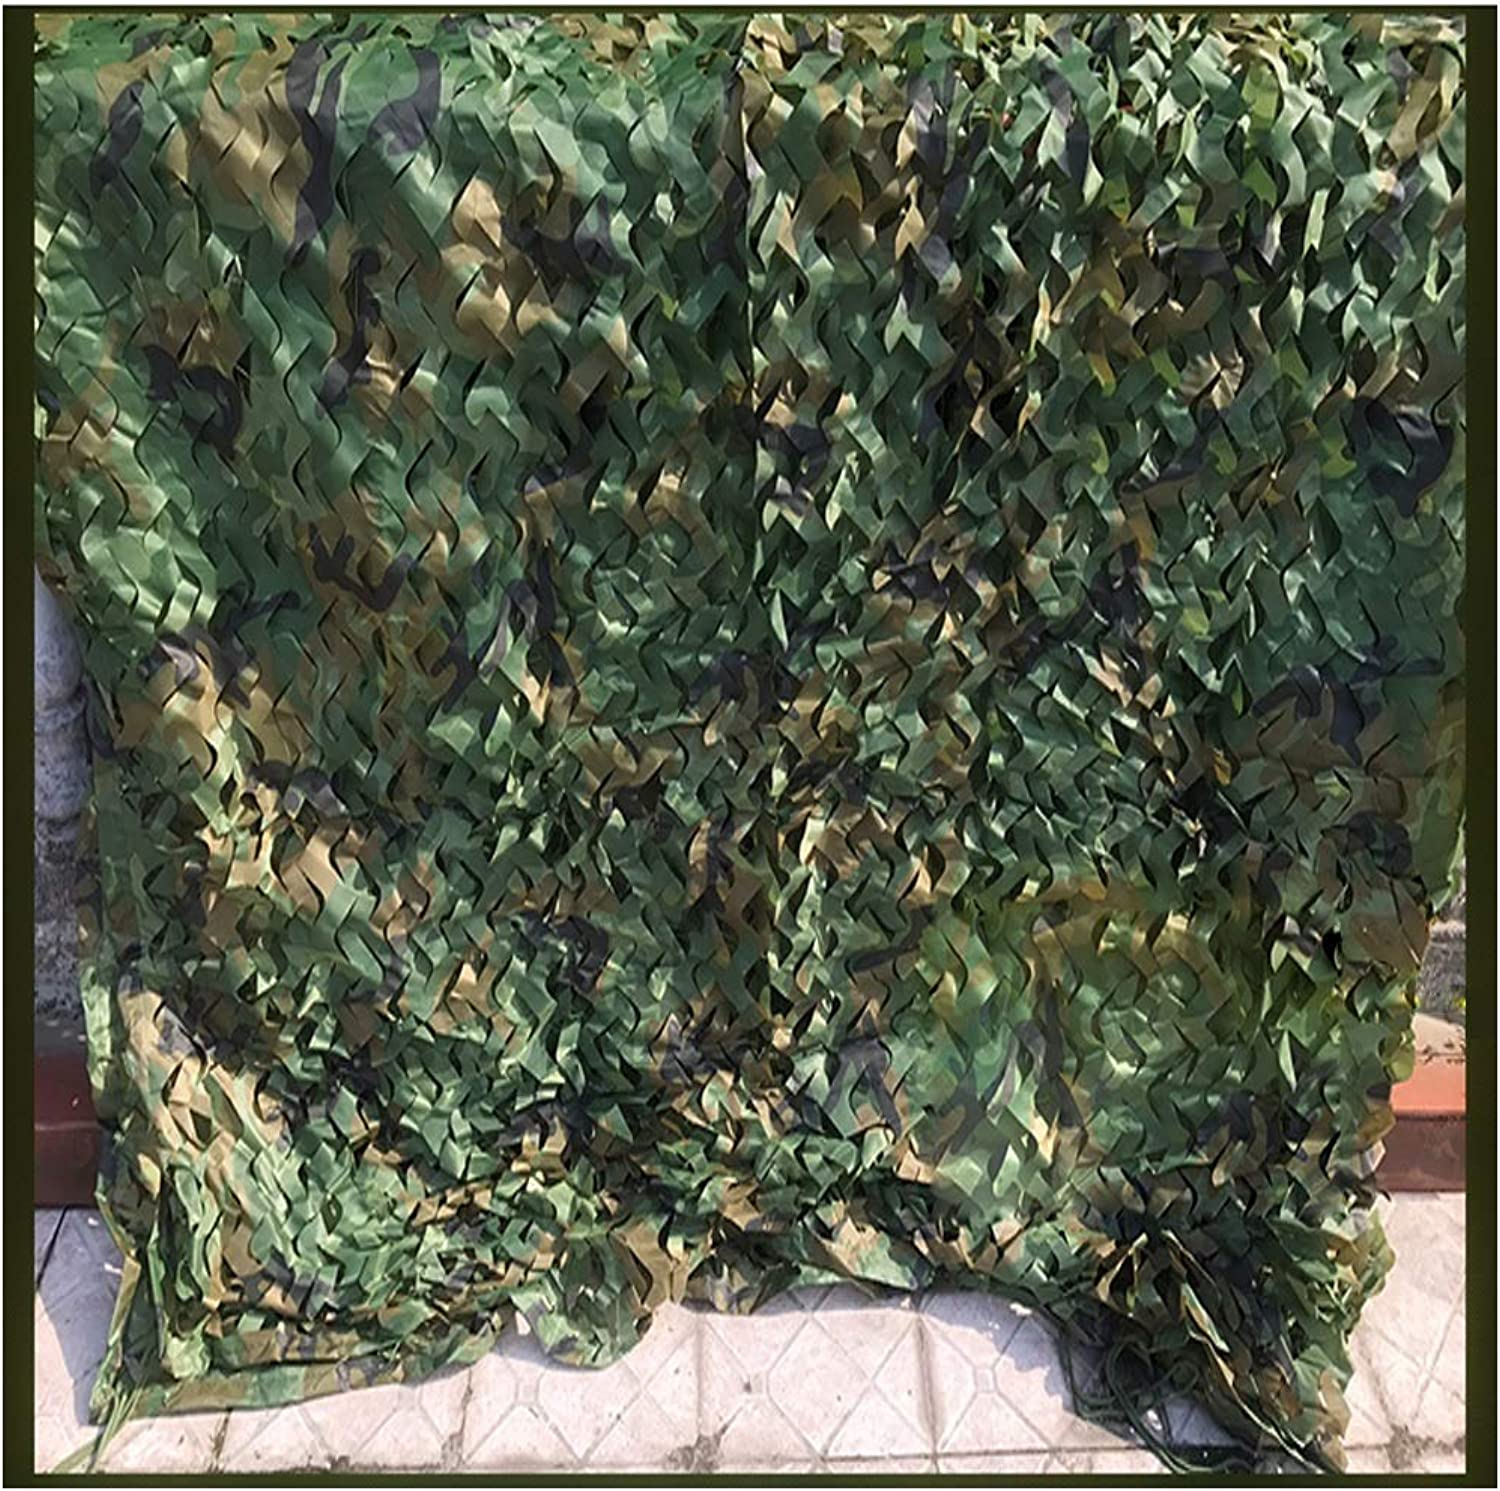 Camouflage Net Camo Netting Oxford Fabric Hunting Kids blueee Poles White Military Netting Hanging Decoration Outdoor Camouflage Net for Camping 4x10m,6x8m,5x10m,6x10m,7x10m,8x10m,9x10m,10x10m Carl Artb